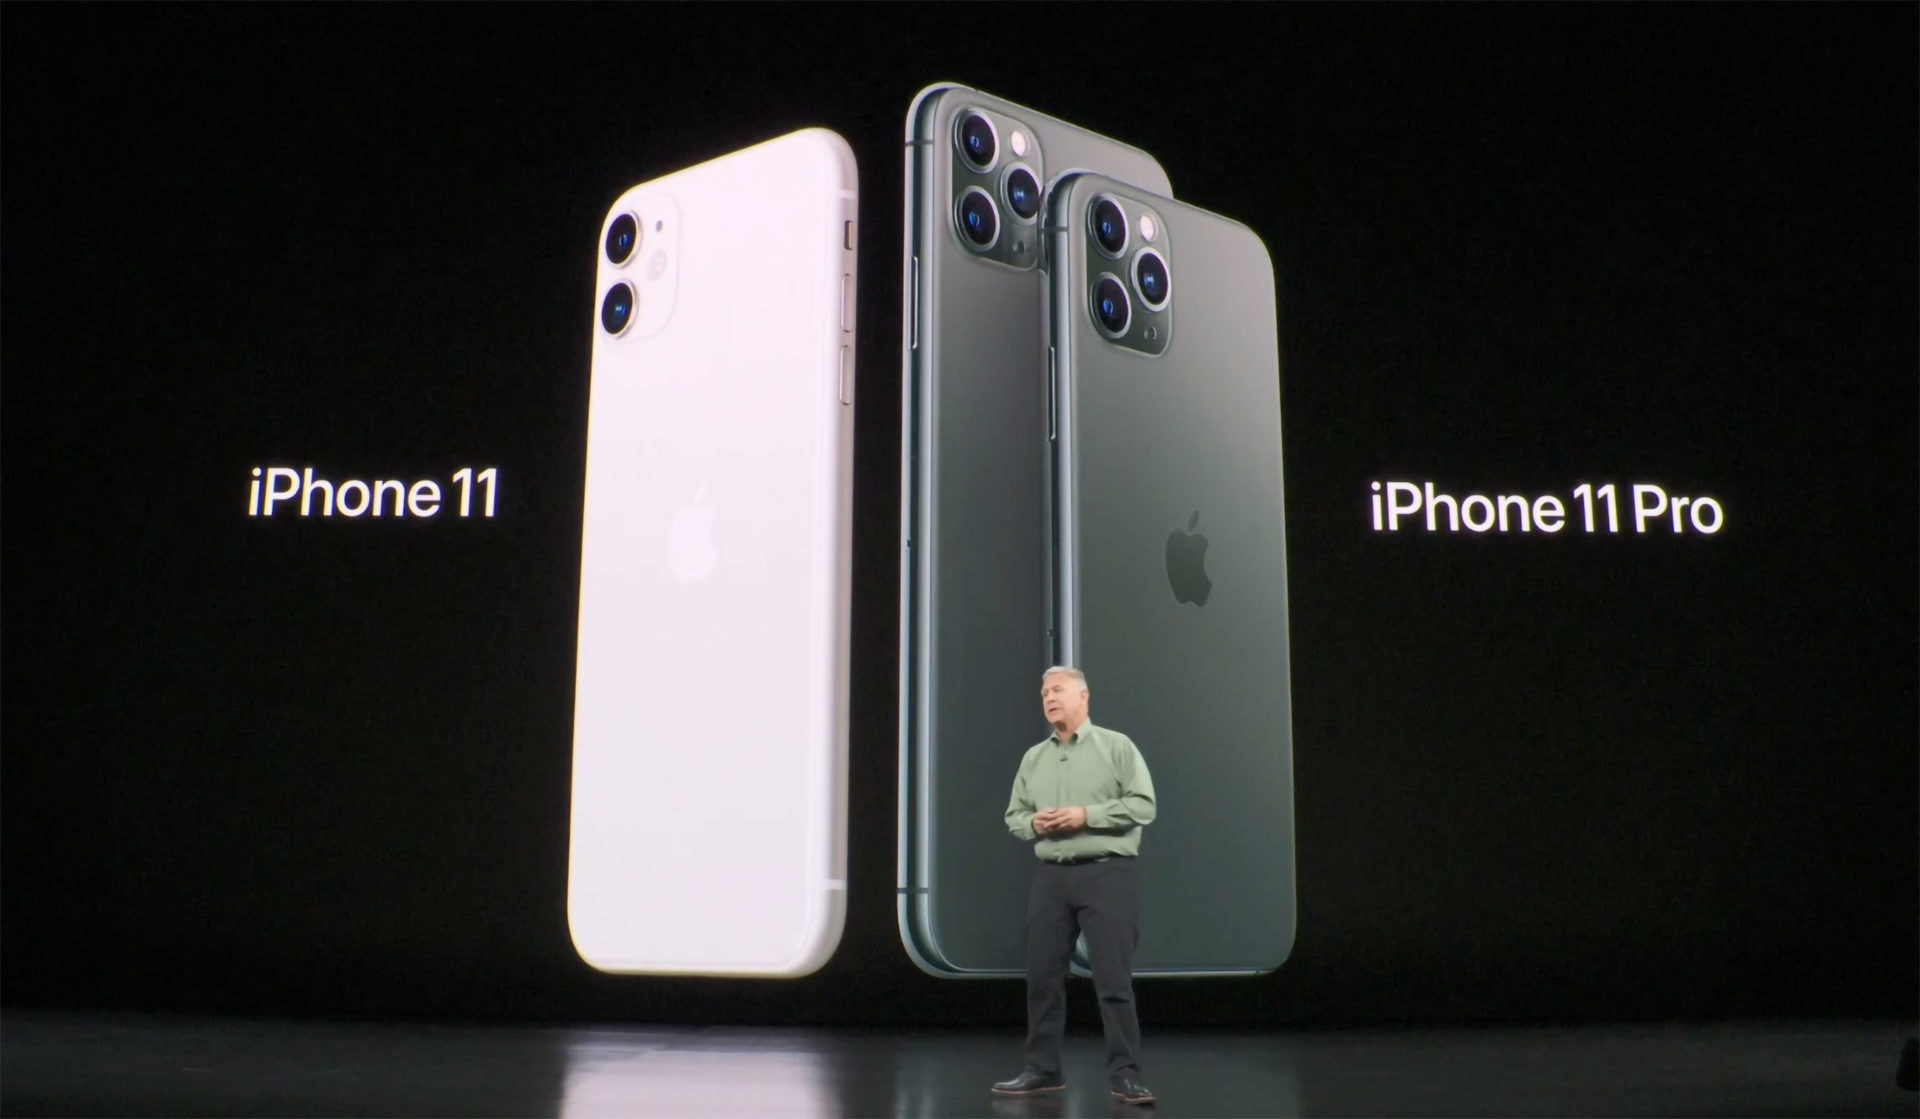 Phil Schiller presenting the iPhone 11 and iPhone 11 Pro at the Apple September 10 Keynote